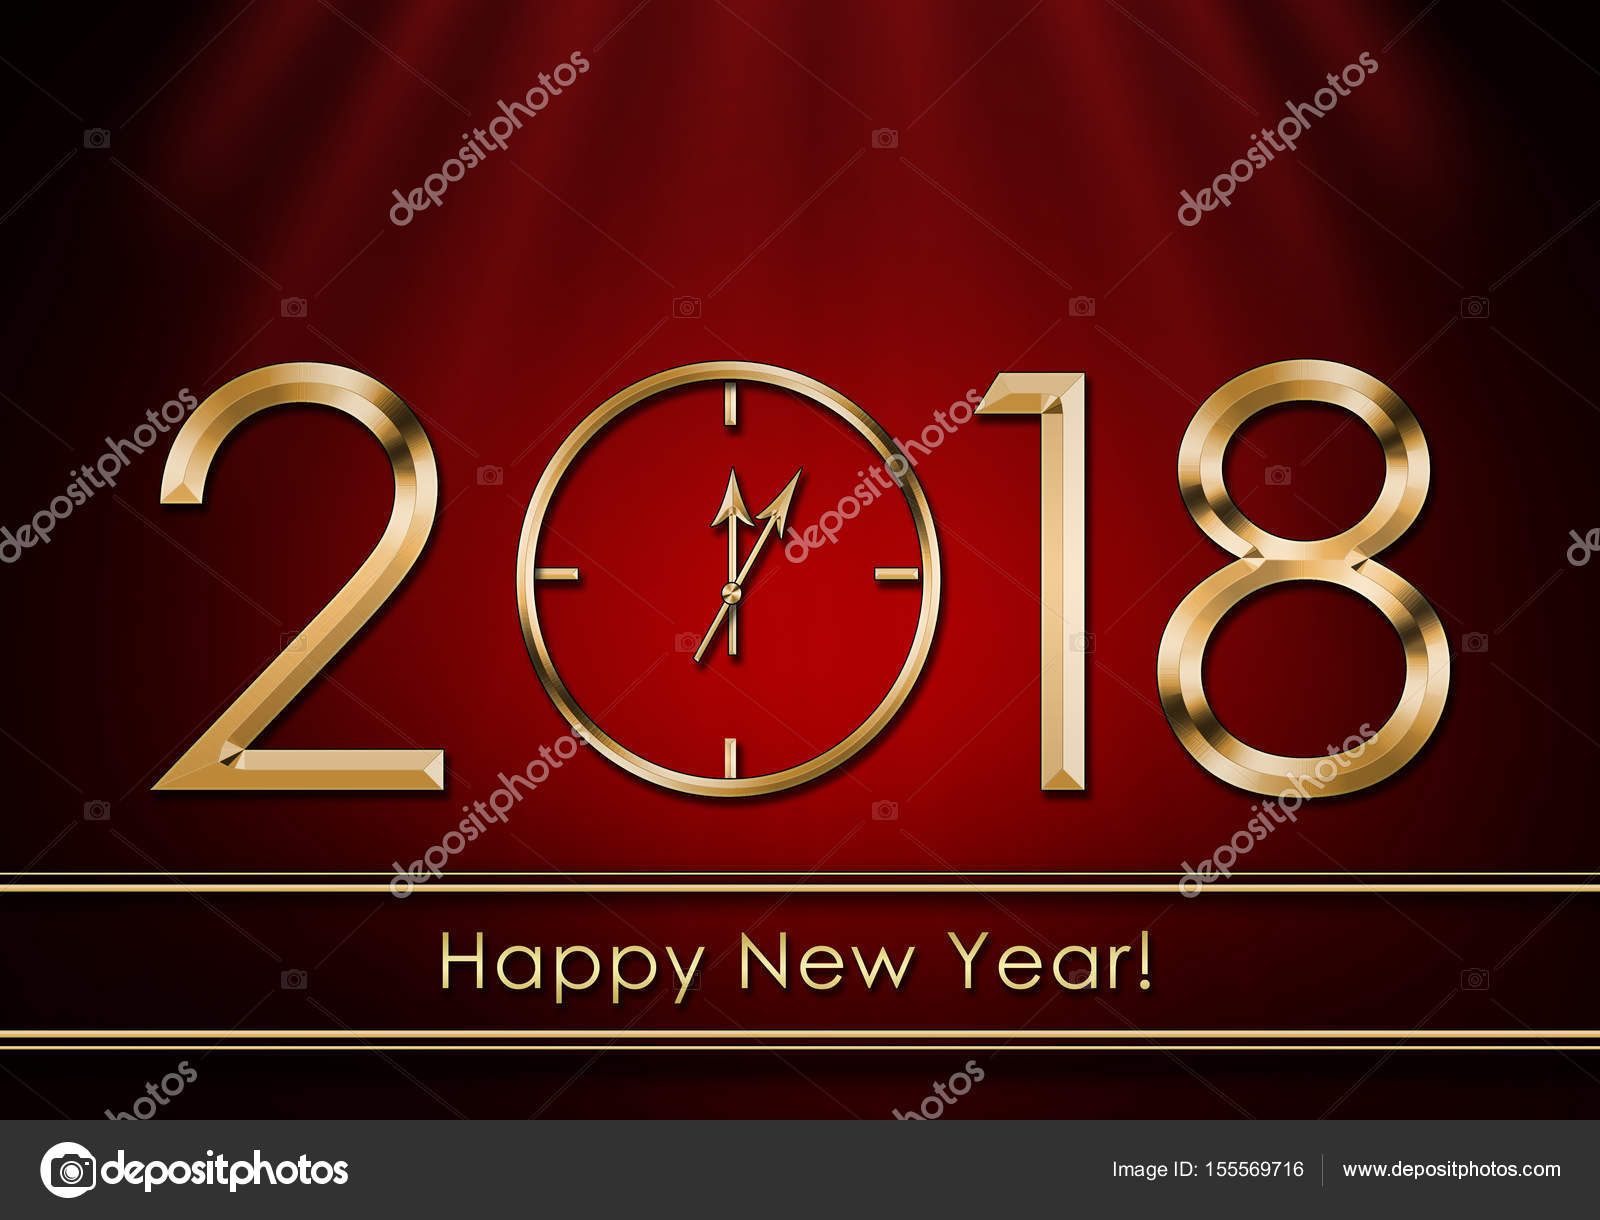 Happy New Year 2018  New Year Clock     Stock Photo      SyhinStas  155569716 Happy New Year 2018  New Year Clock     Stock Photo